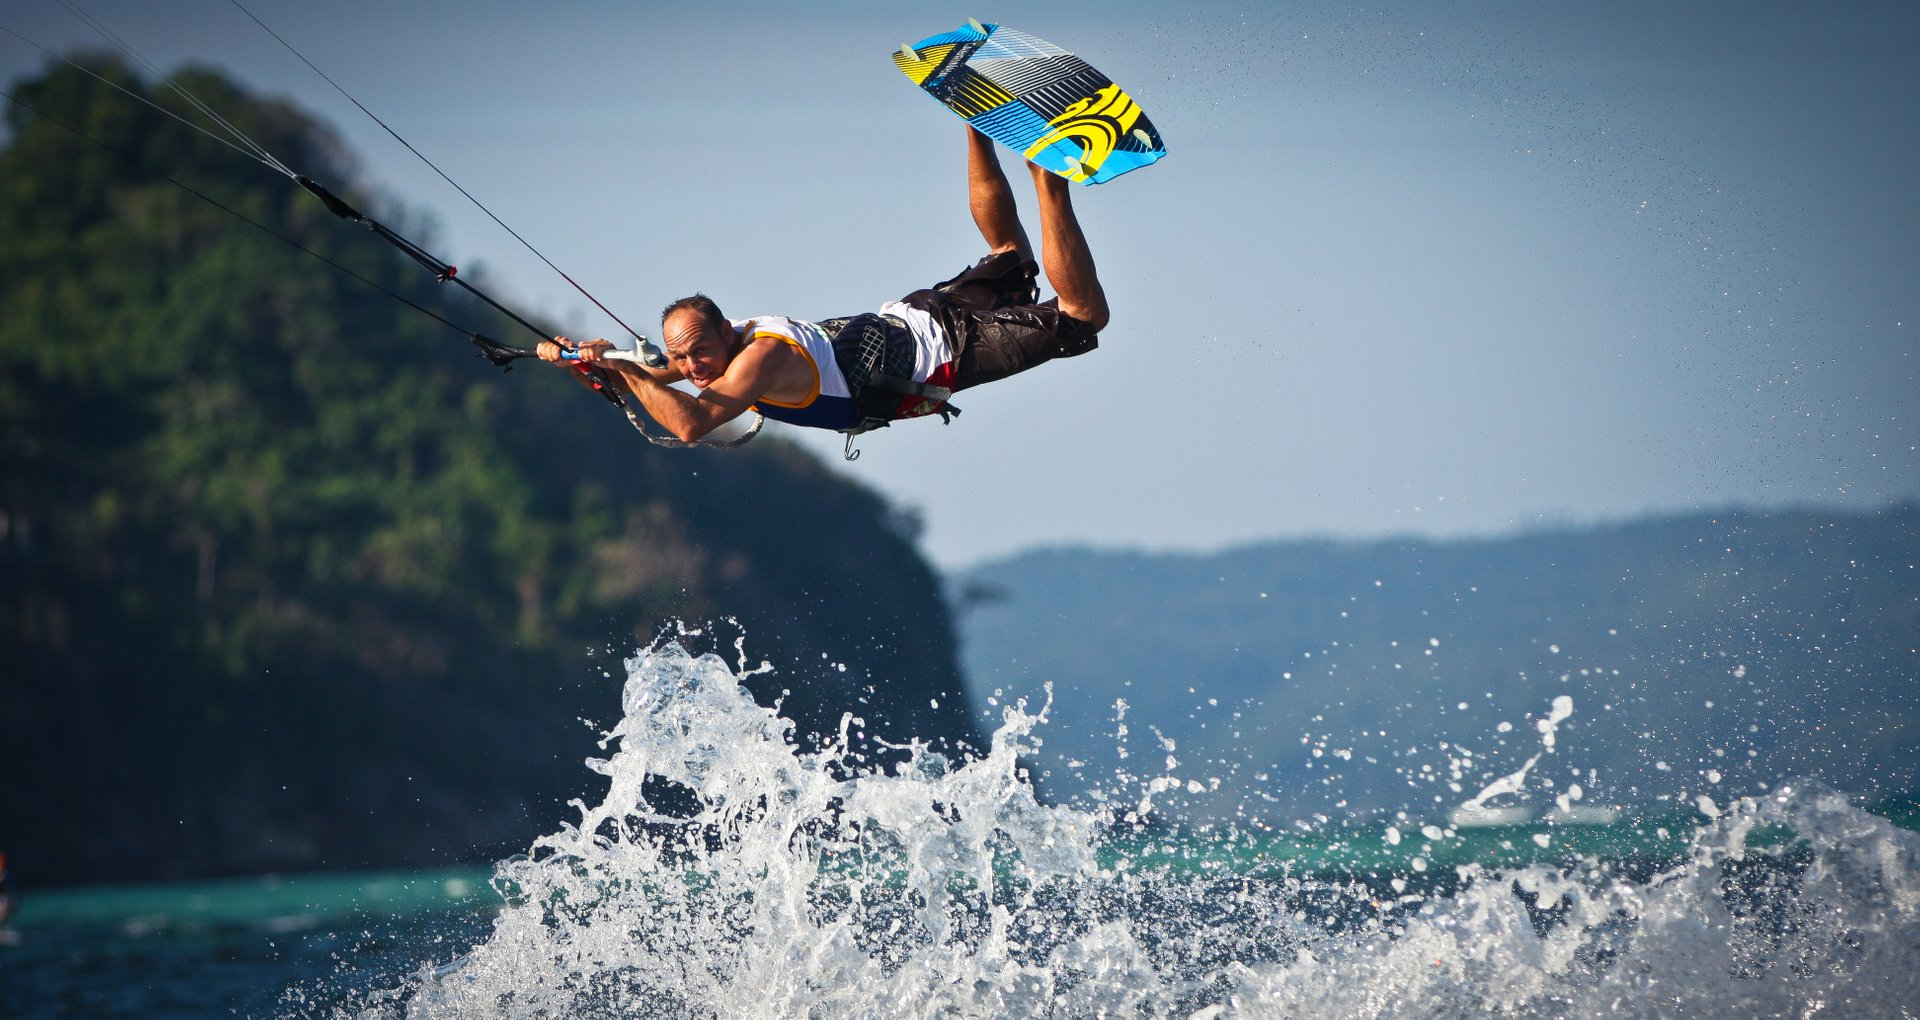 Kitesurfing on Boracay in Philippines - Best Season 2019